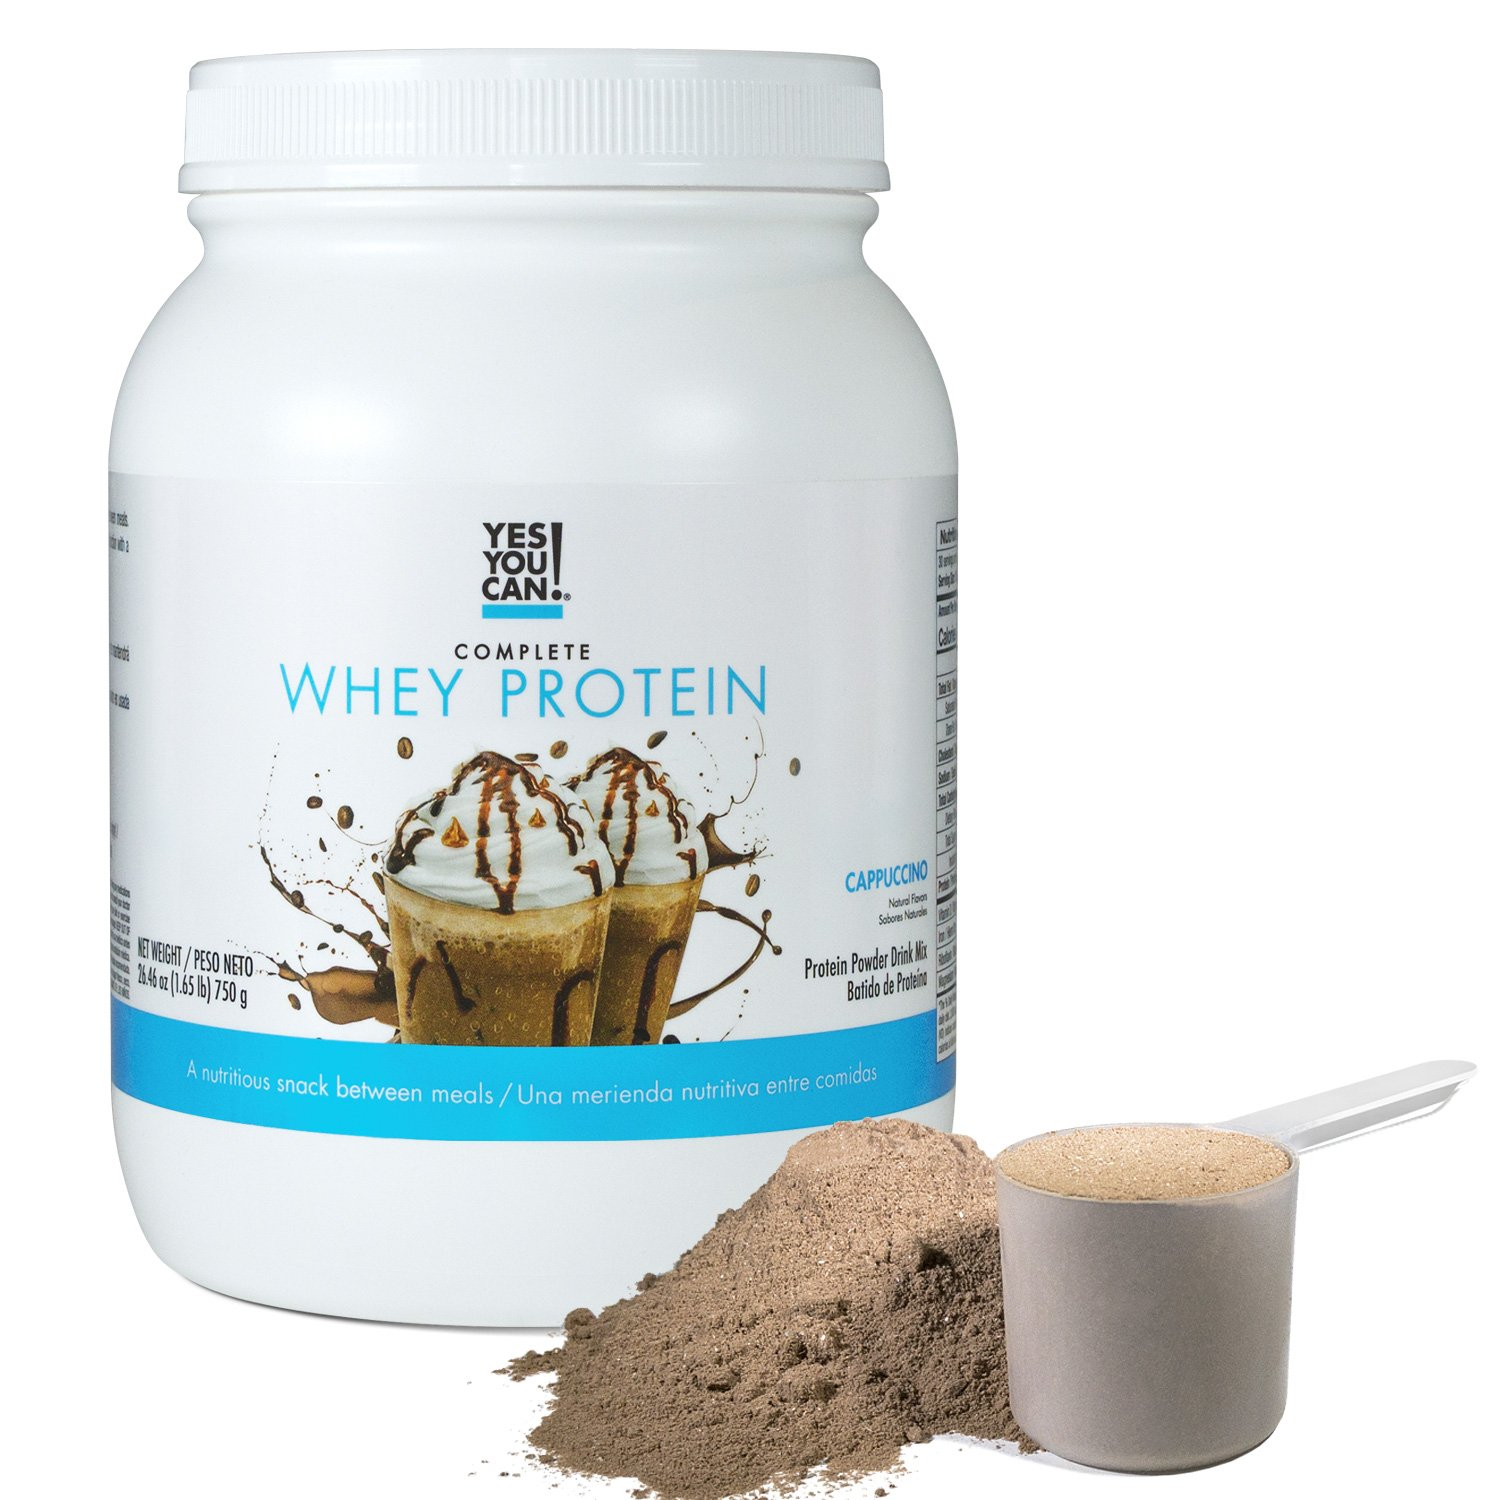 Amazon.com: Yes You Can! Complete Whey Protein, a Nutritious Snack Between Meals, 15 Grams of Protein, Helps Lose Weight and Build Muscle, ...